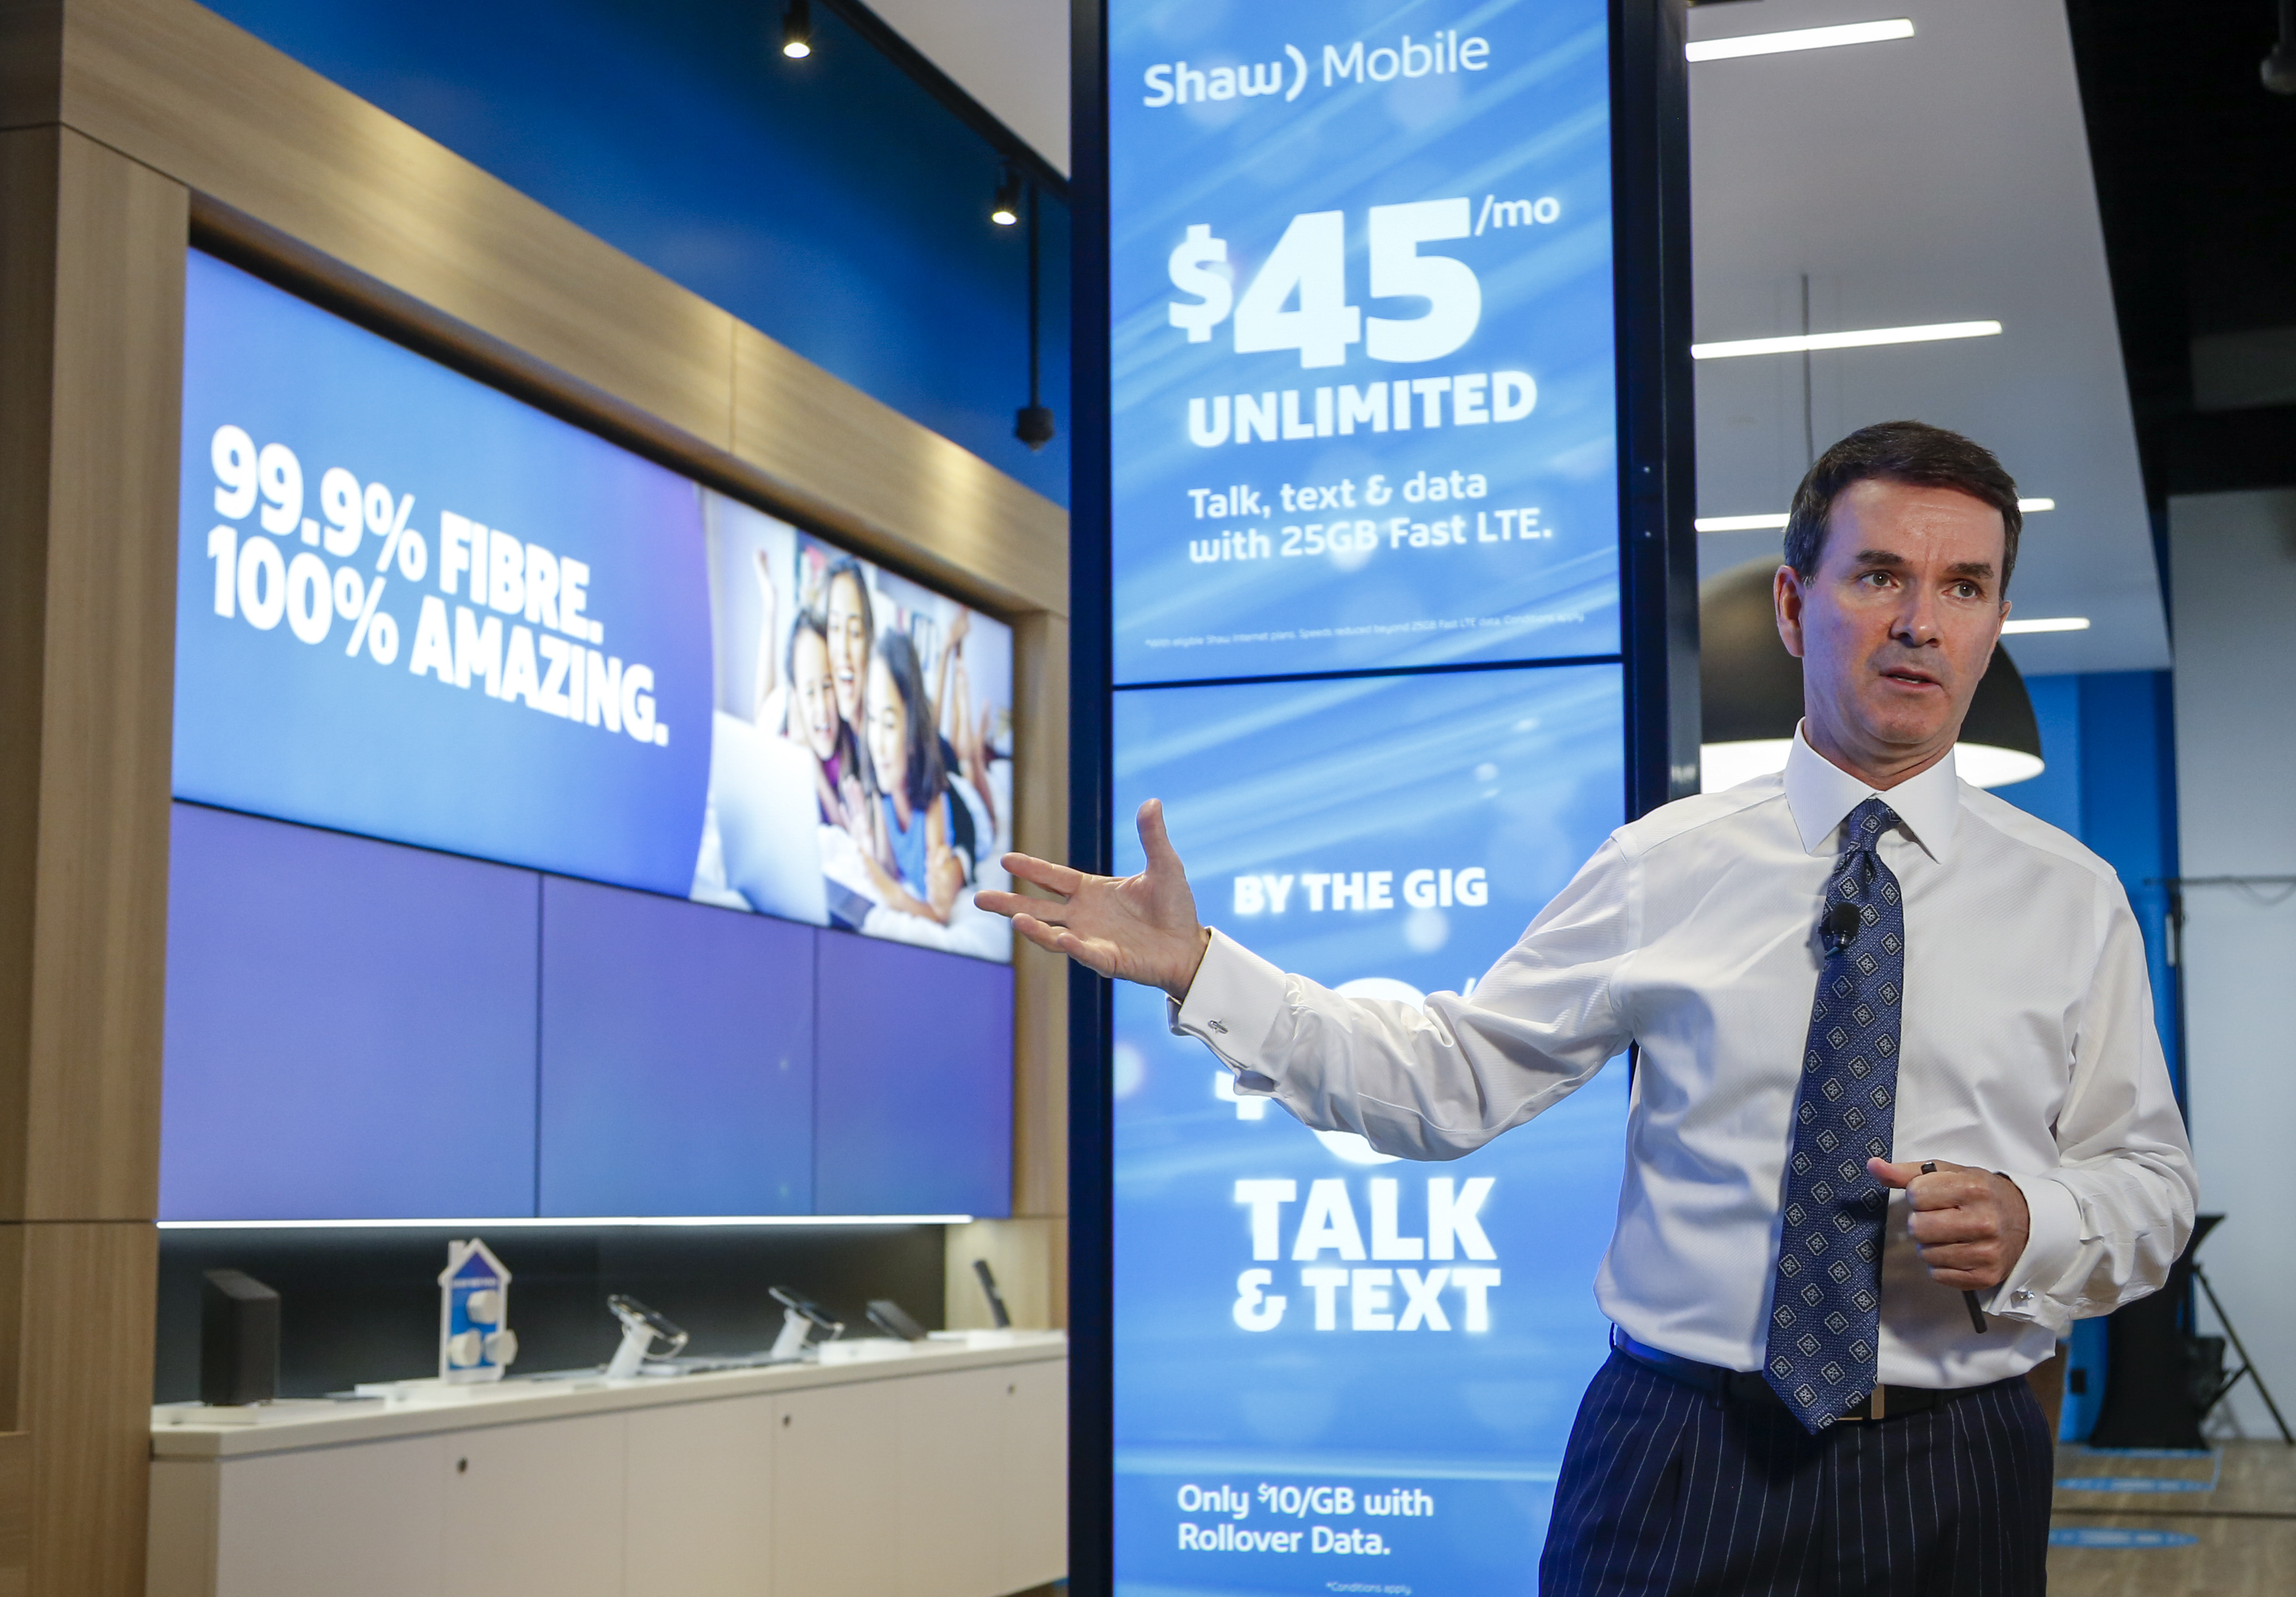 'Shaw Mobile' banks on network convergence  | Light Reading